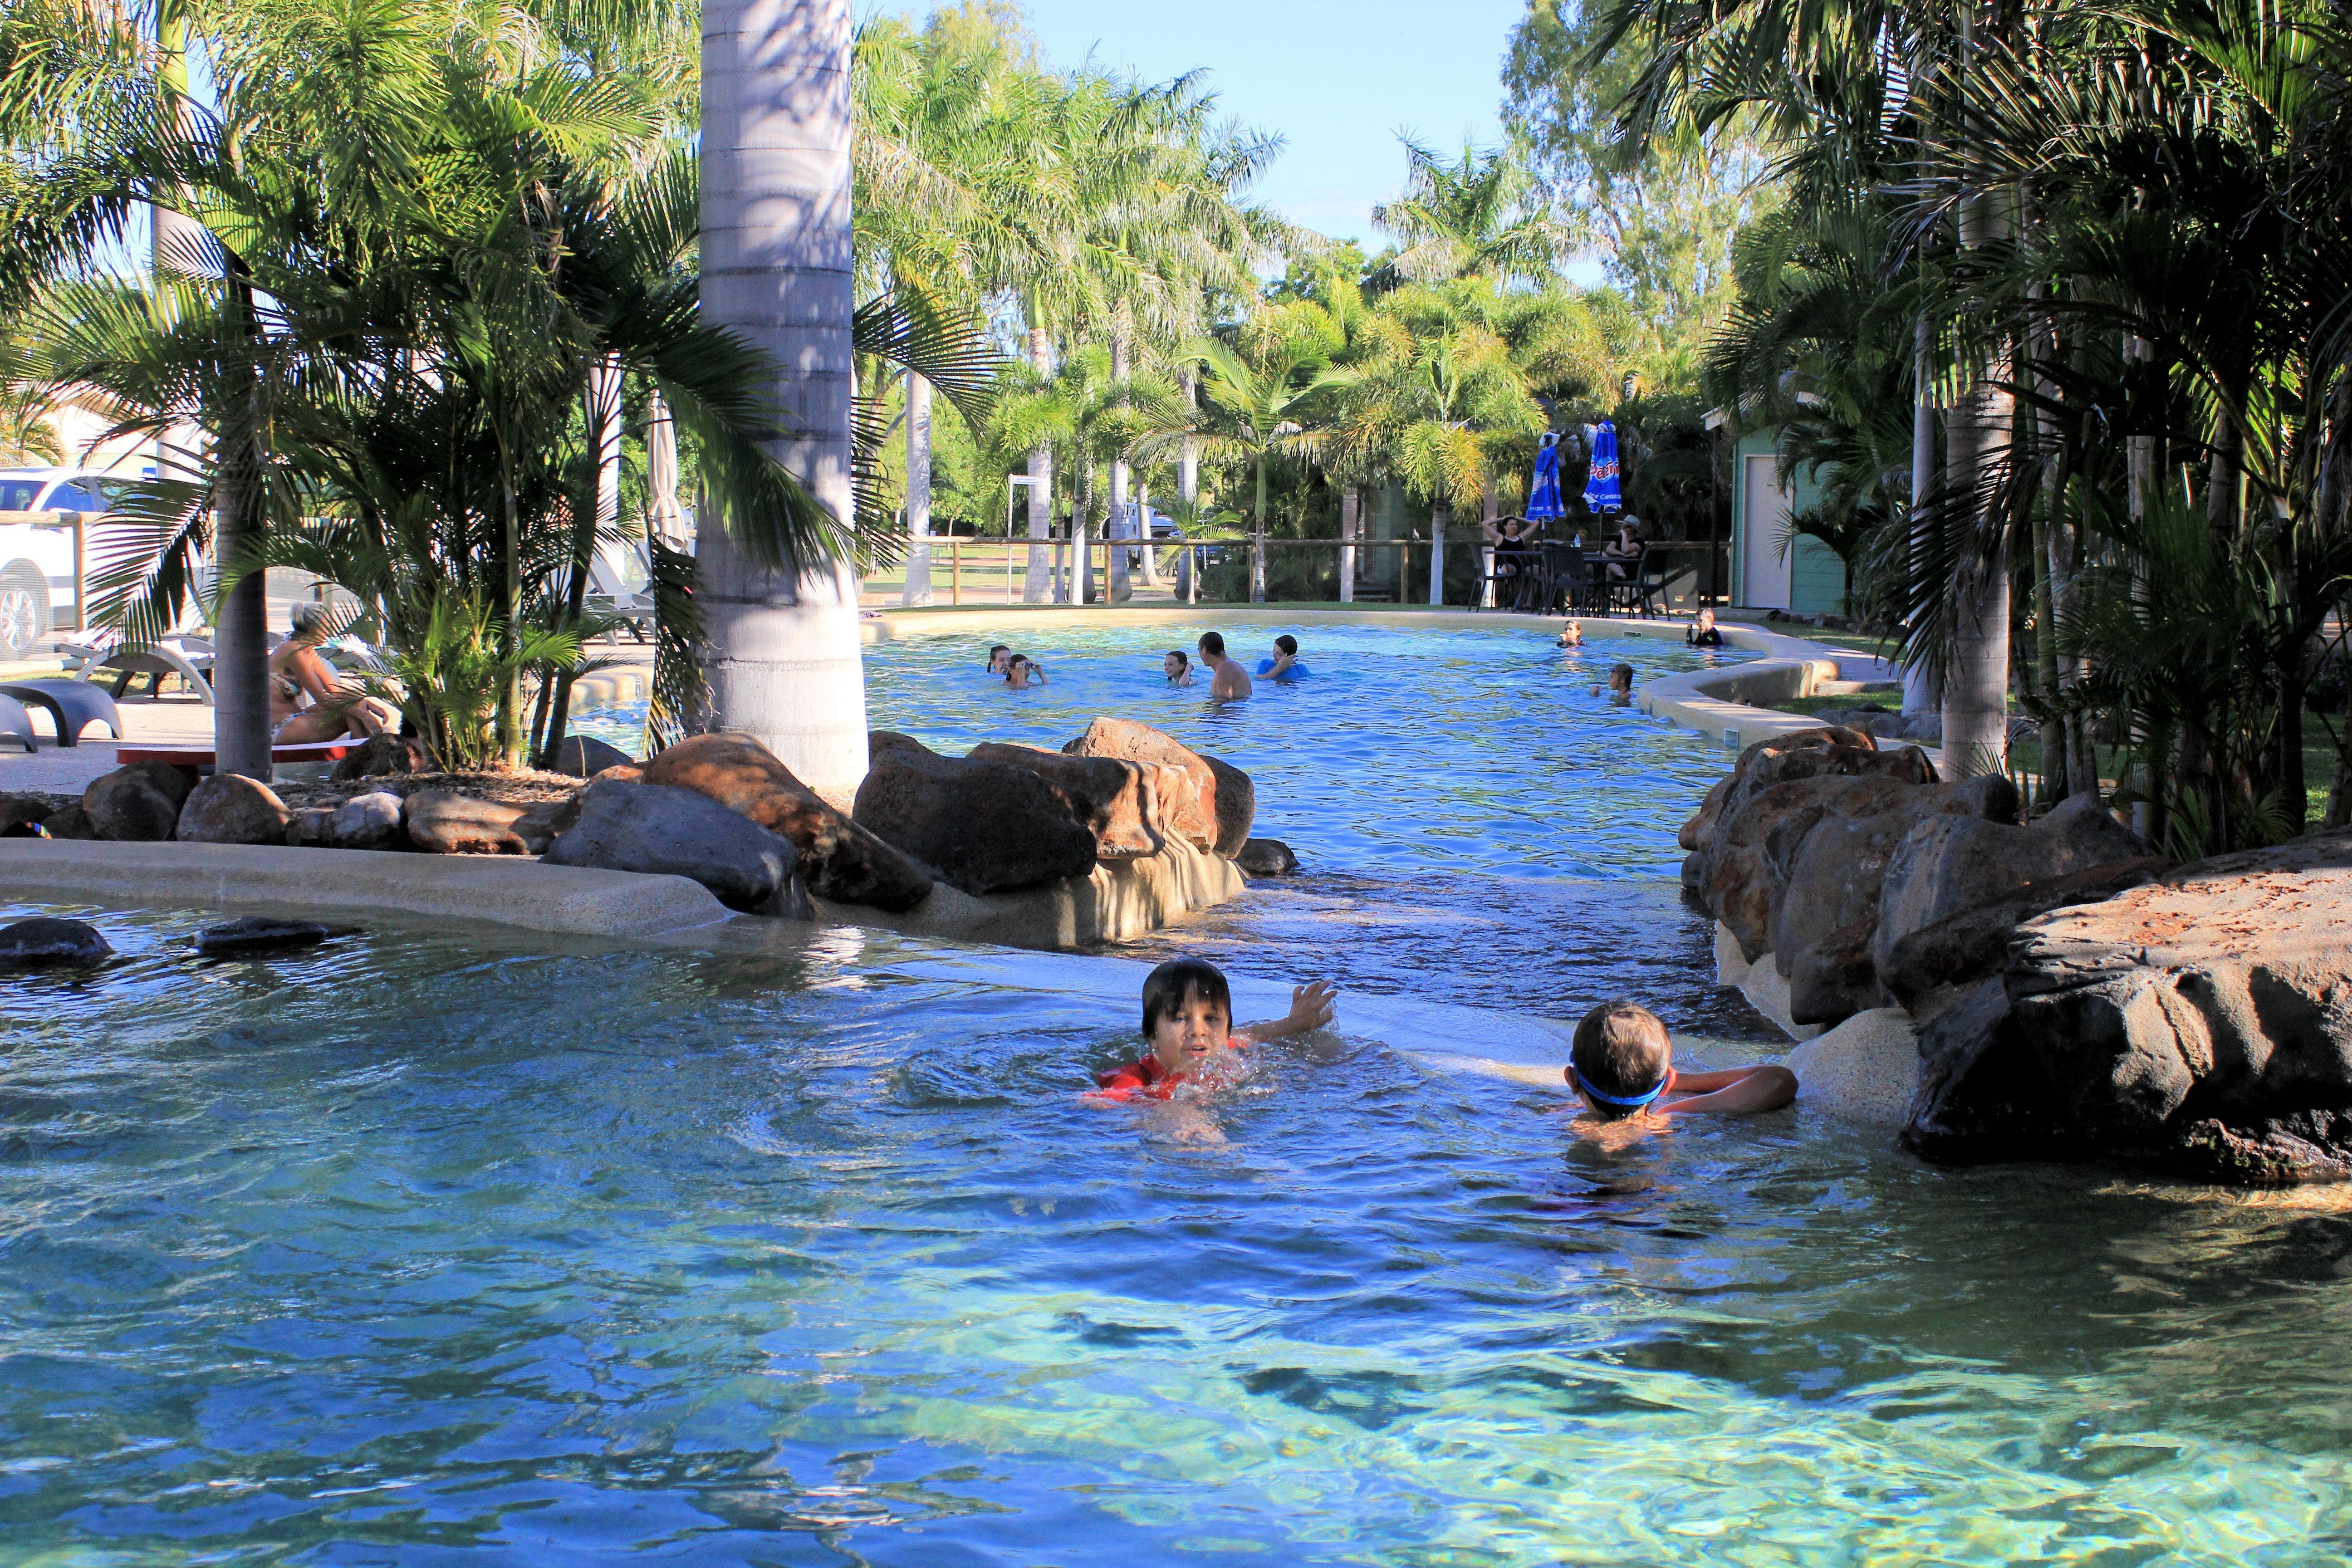 Big4 Aussie Outback Oasis Holiday Park - Accommodation Mount Tamborine